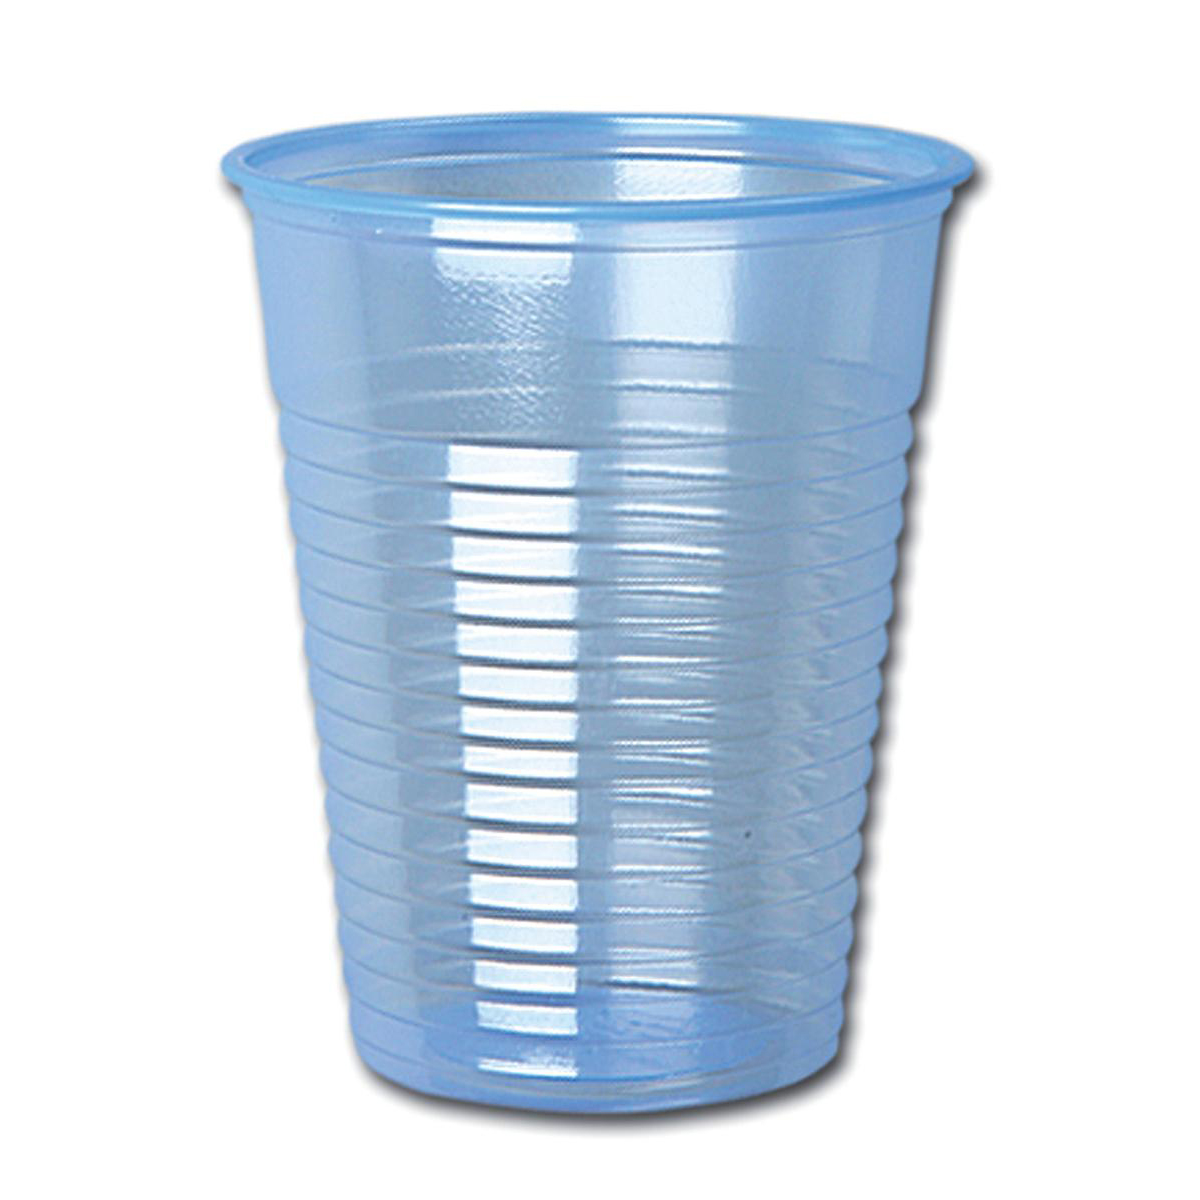 Disposable Cups & Accessories Water Cups Plastic Non Vending for Cold Drinks 7oz 207ml Clear Blue Pack 1000